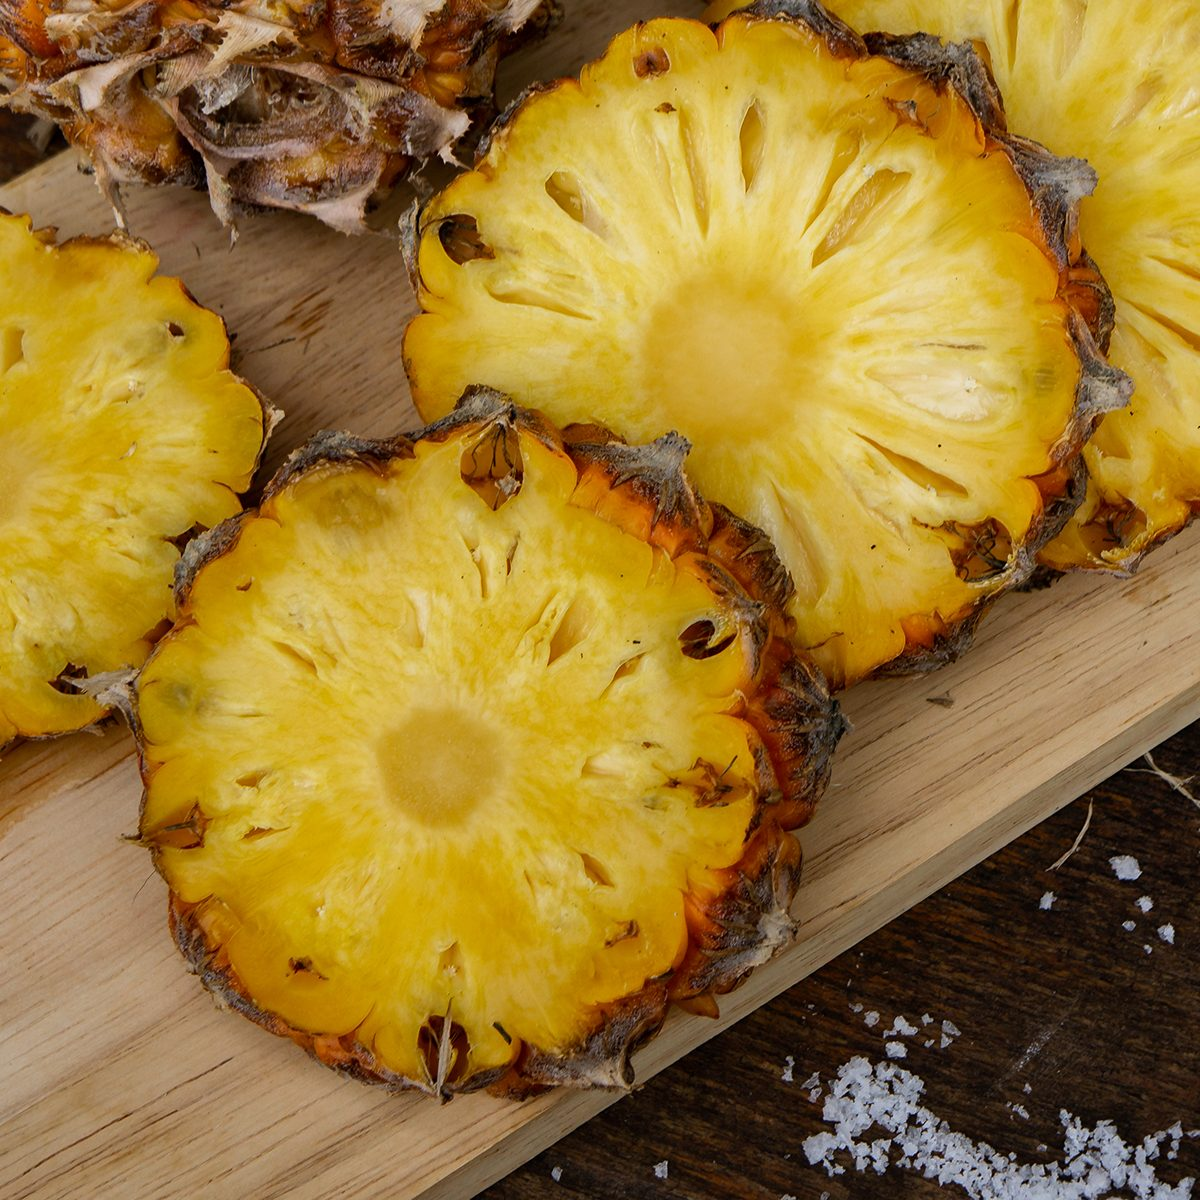 High Angle View Of Pineapple Slices On Cutting Board